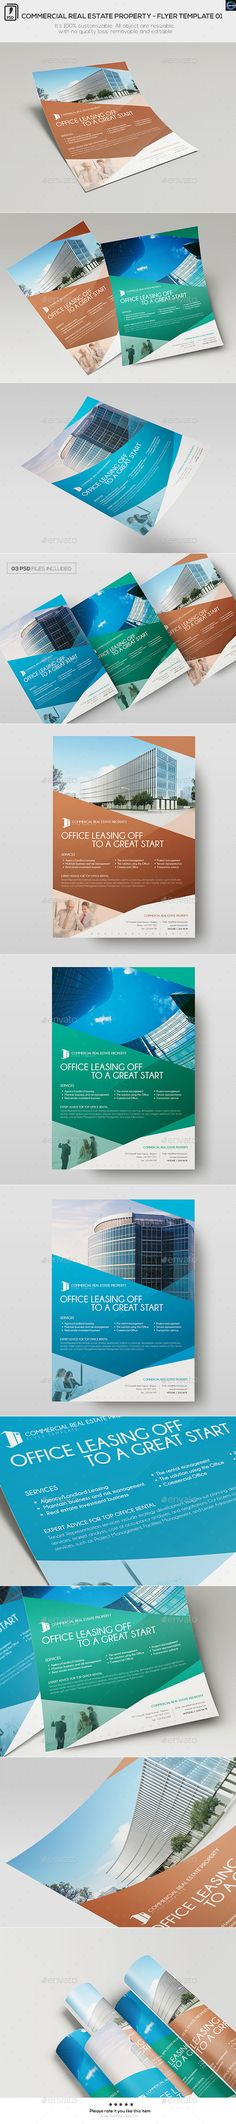 We develop commercial real estate flyers brochures for Commercial real estate brochure template